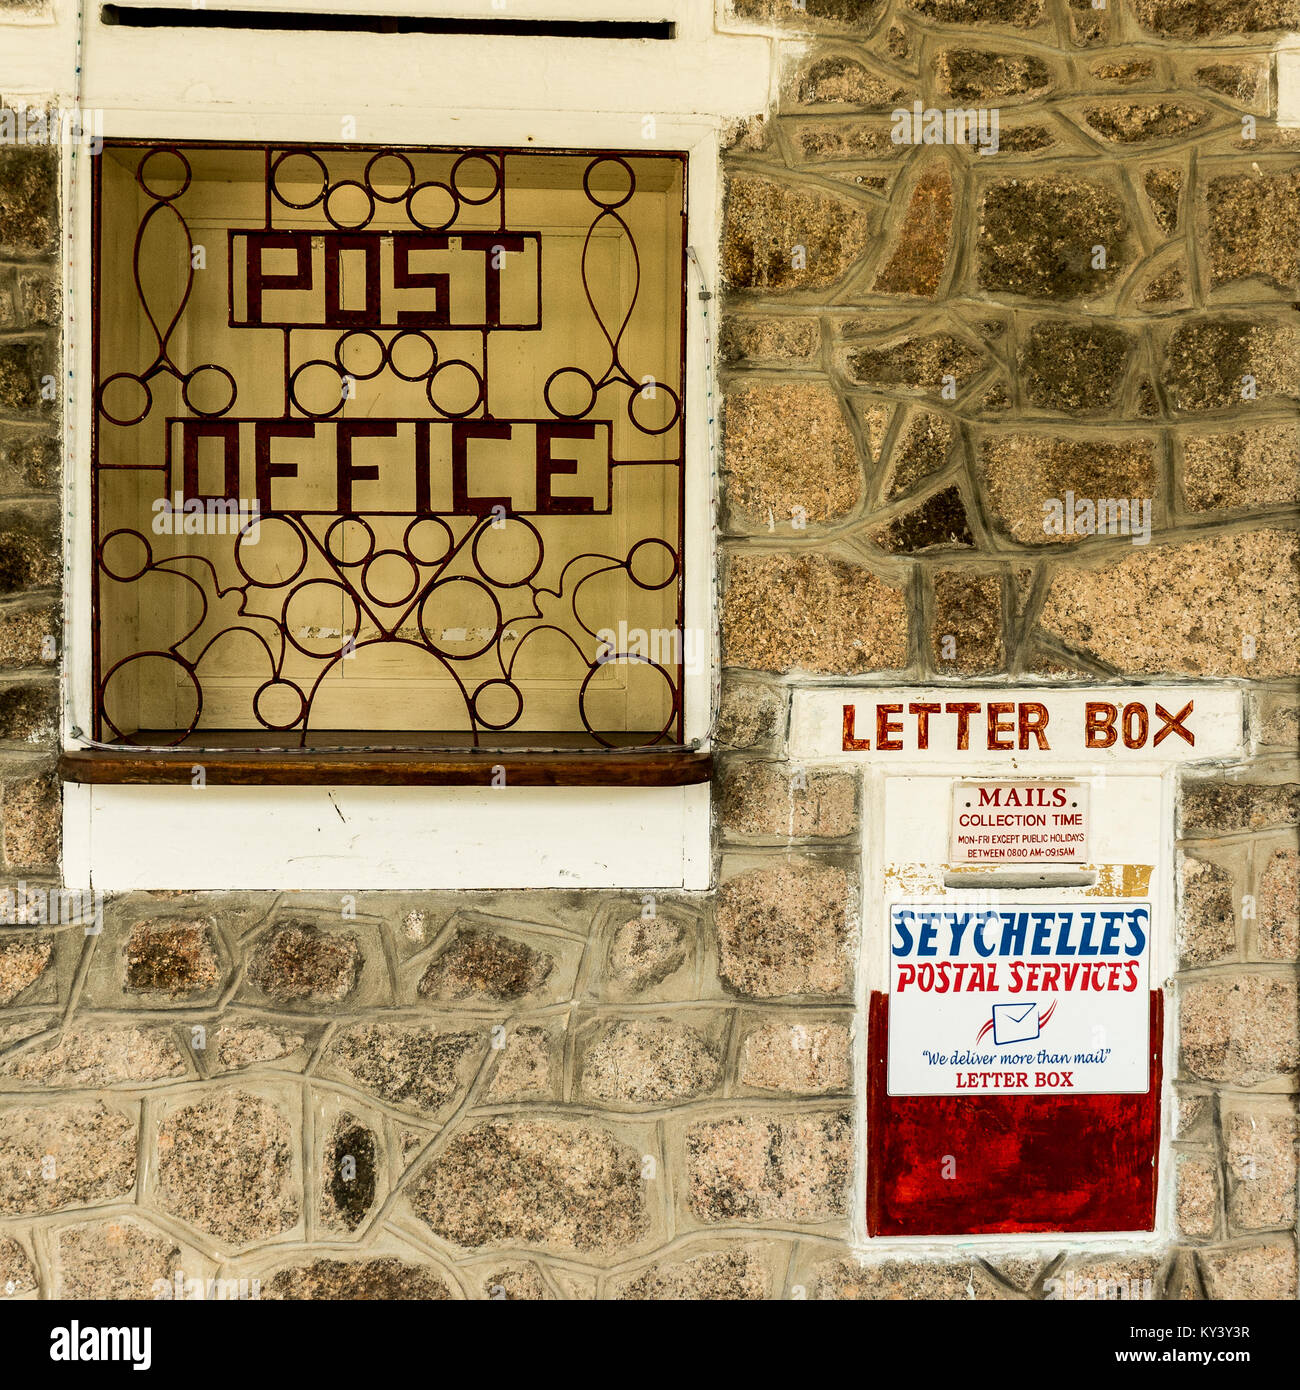 Indian Letter Post Box Stock Photos & Indian Letter Post Box Stock ...